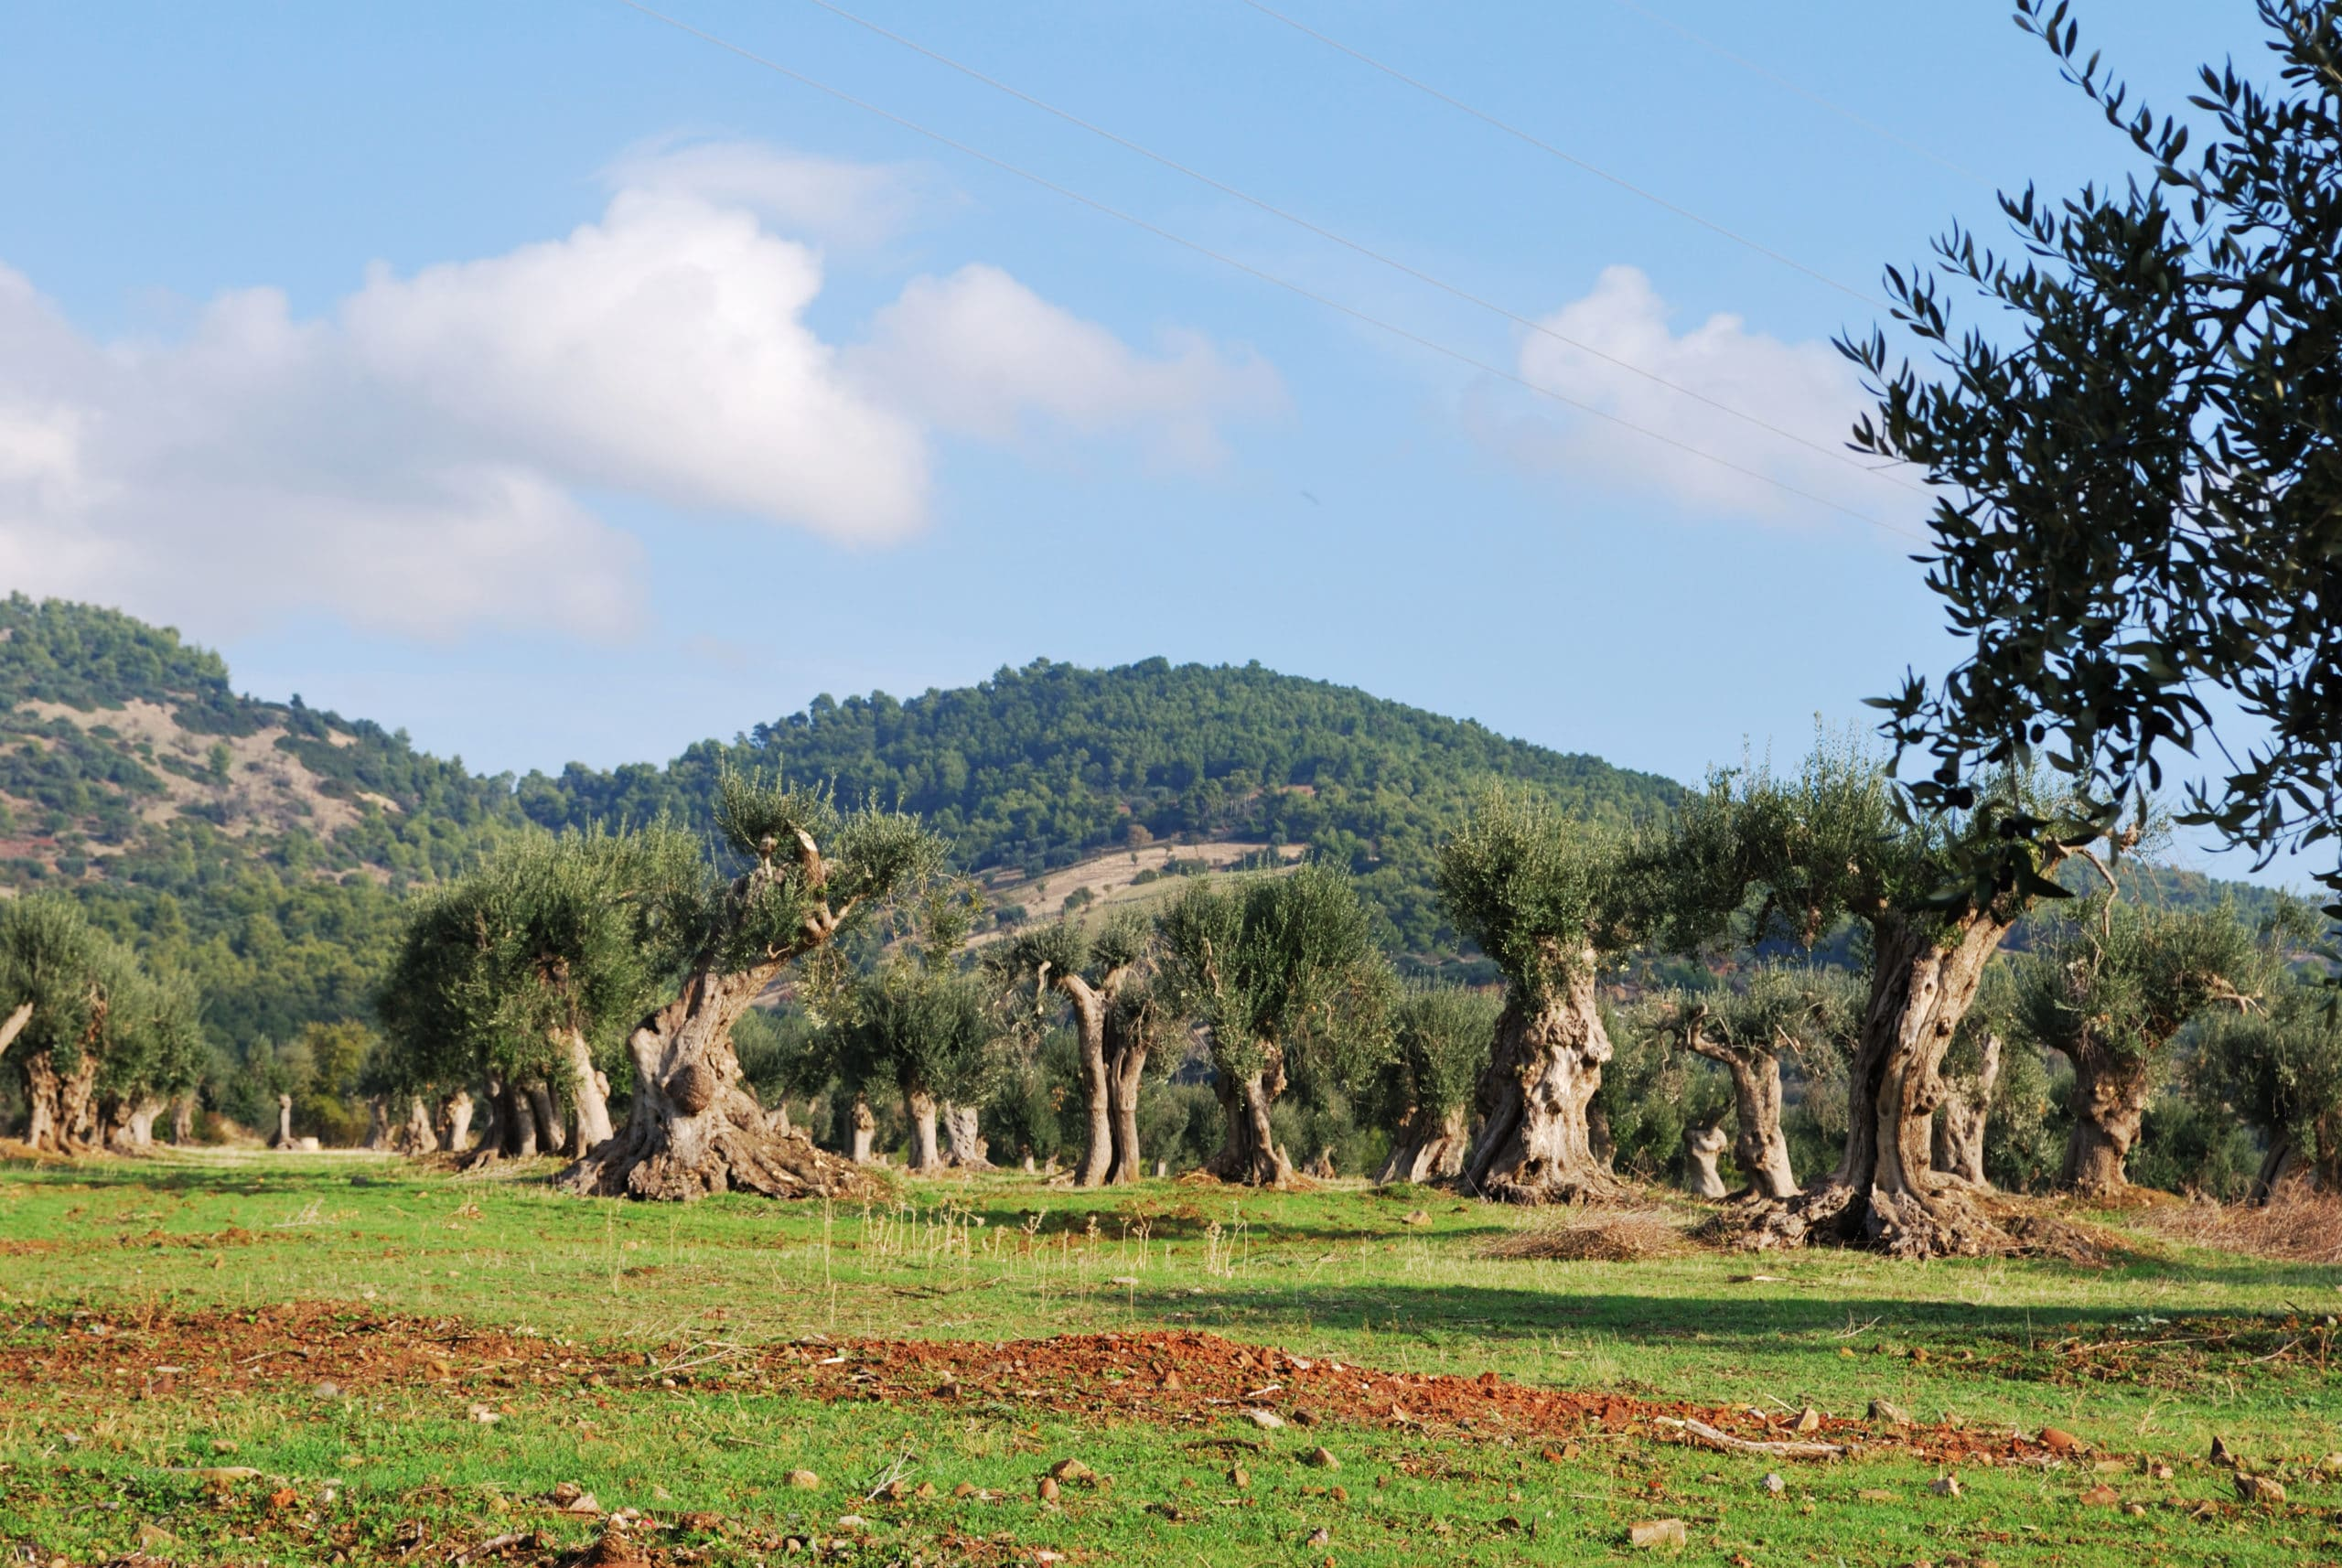 Ancient olive trees, some up to 800 years old, which still bear fruit for production.